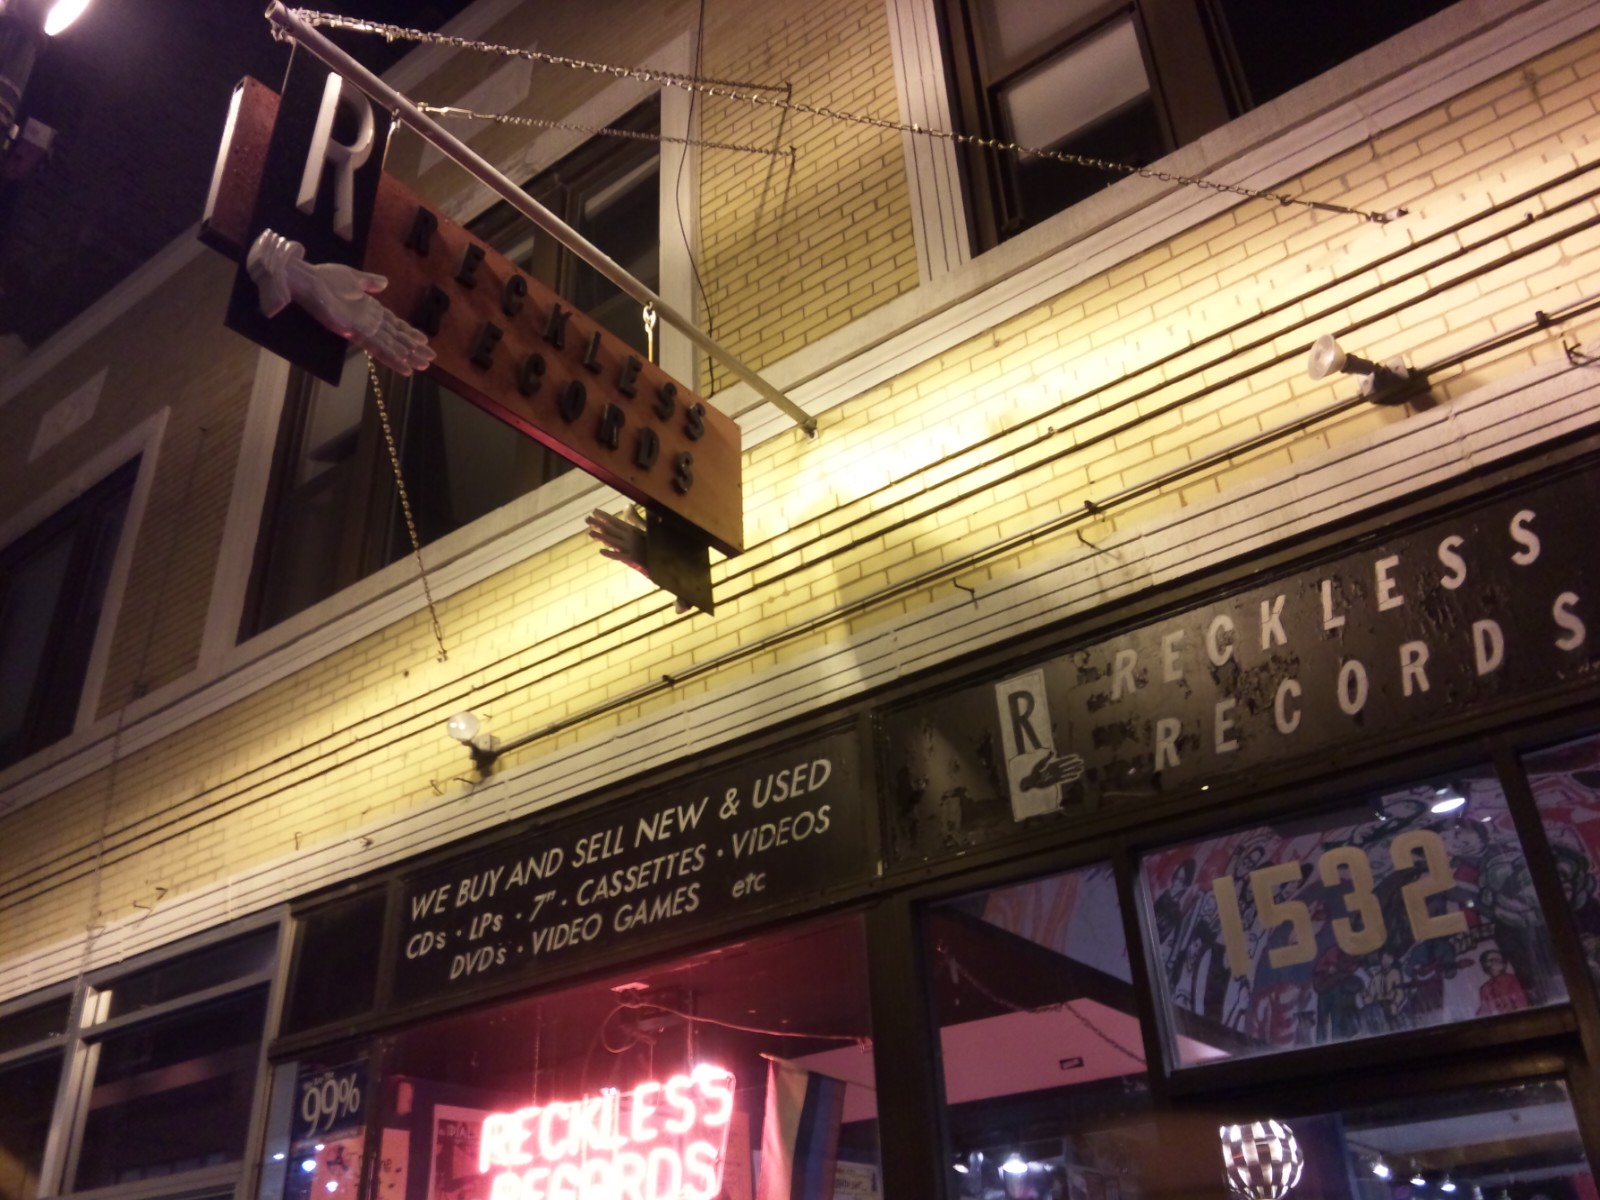 RECKLESS RECORDS(CHICAGO)_a0087389_2225887.jpg